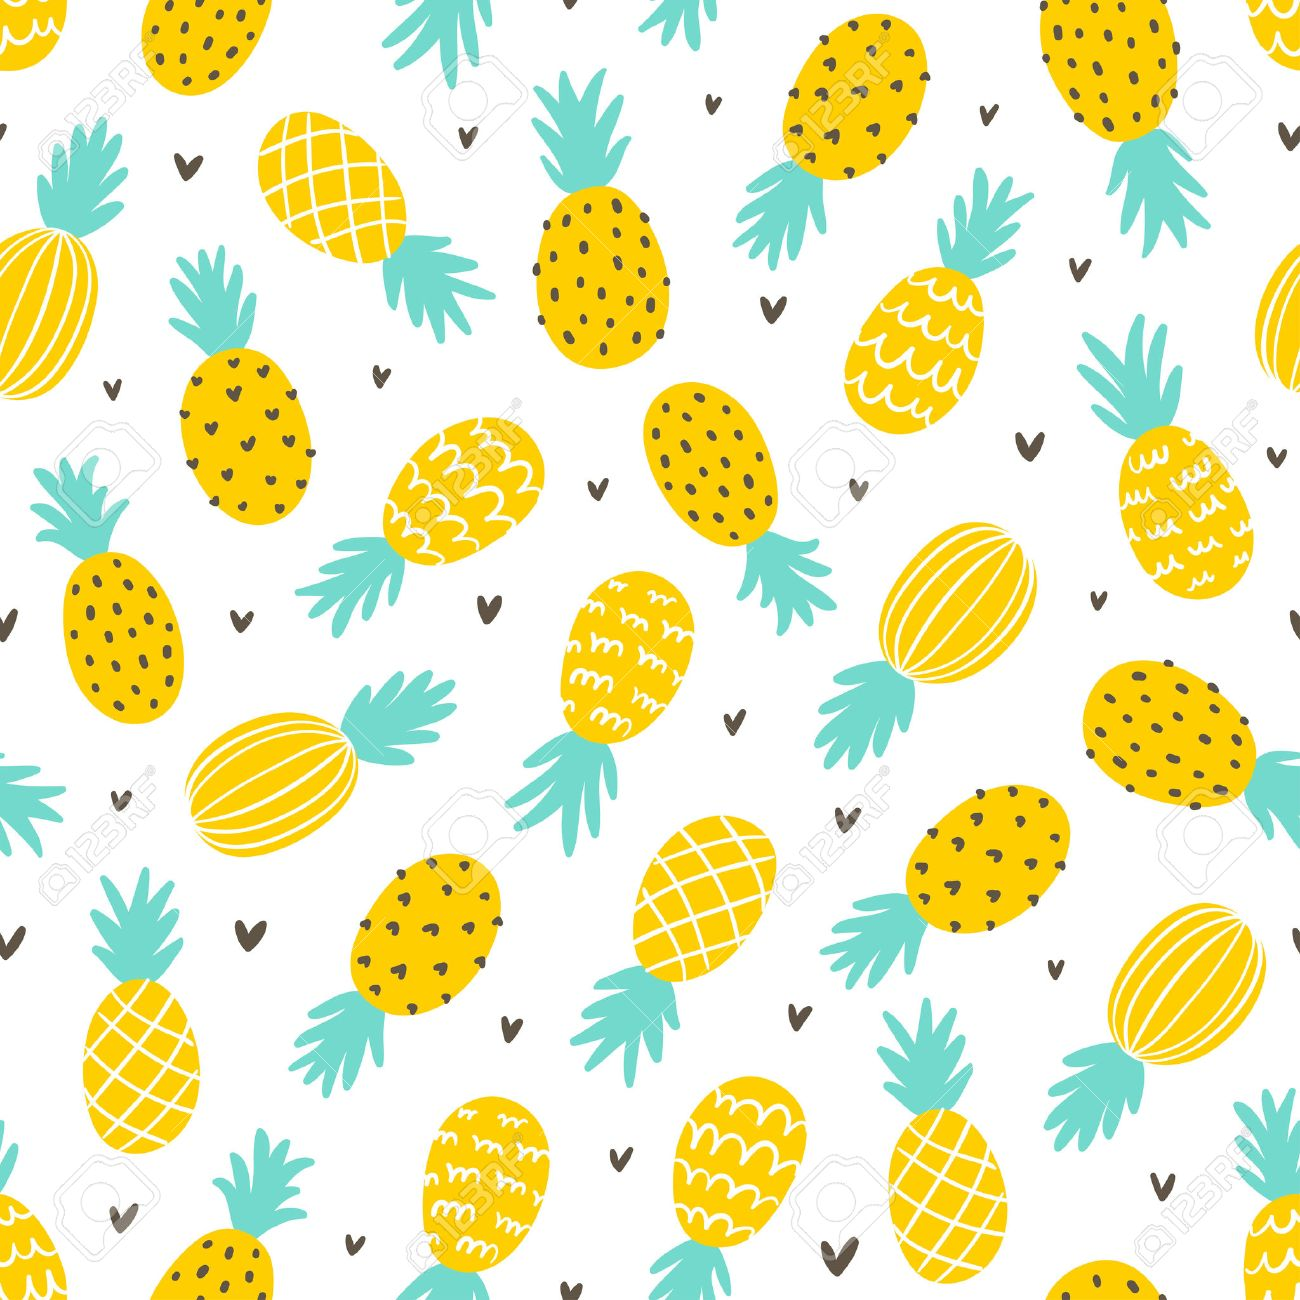 Pineapple And Hearts Seamless Pattern Background Stock Vector